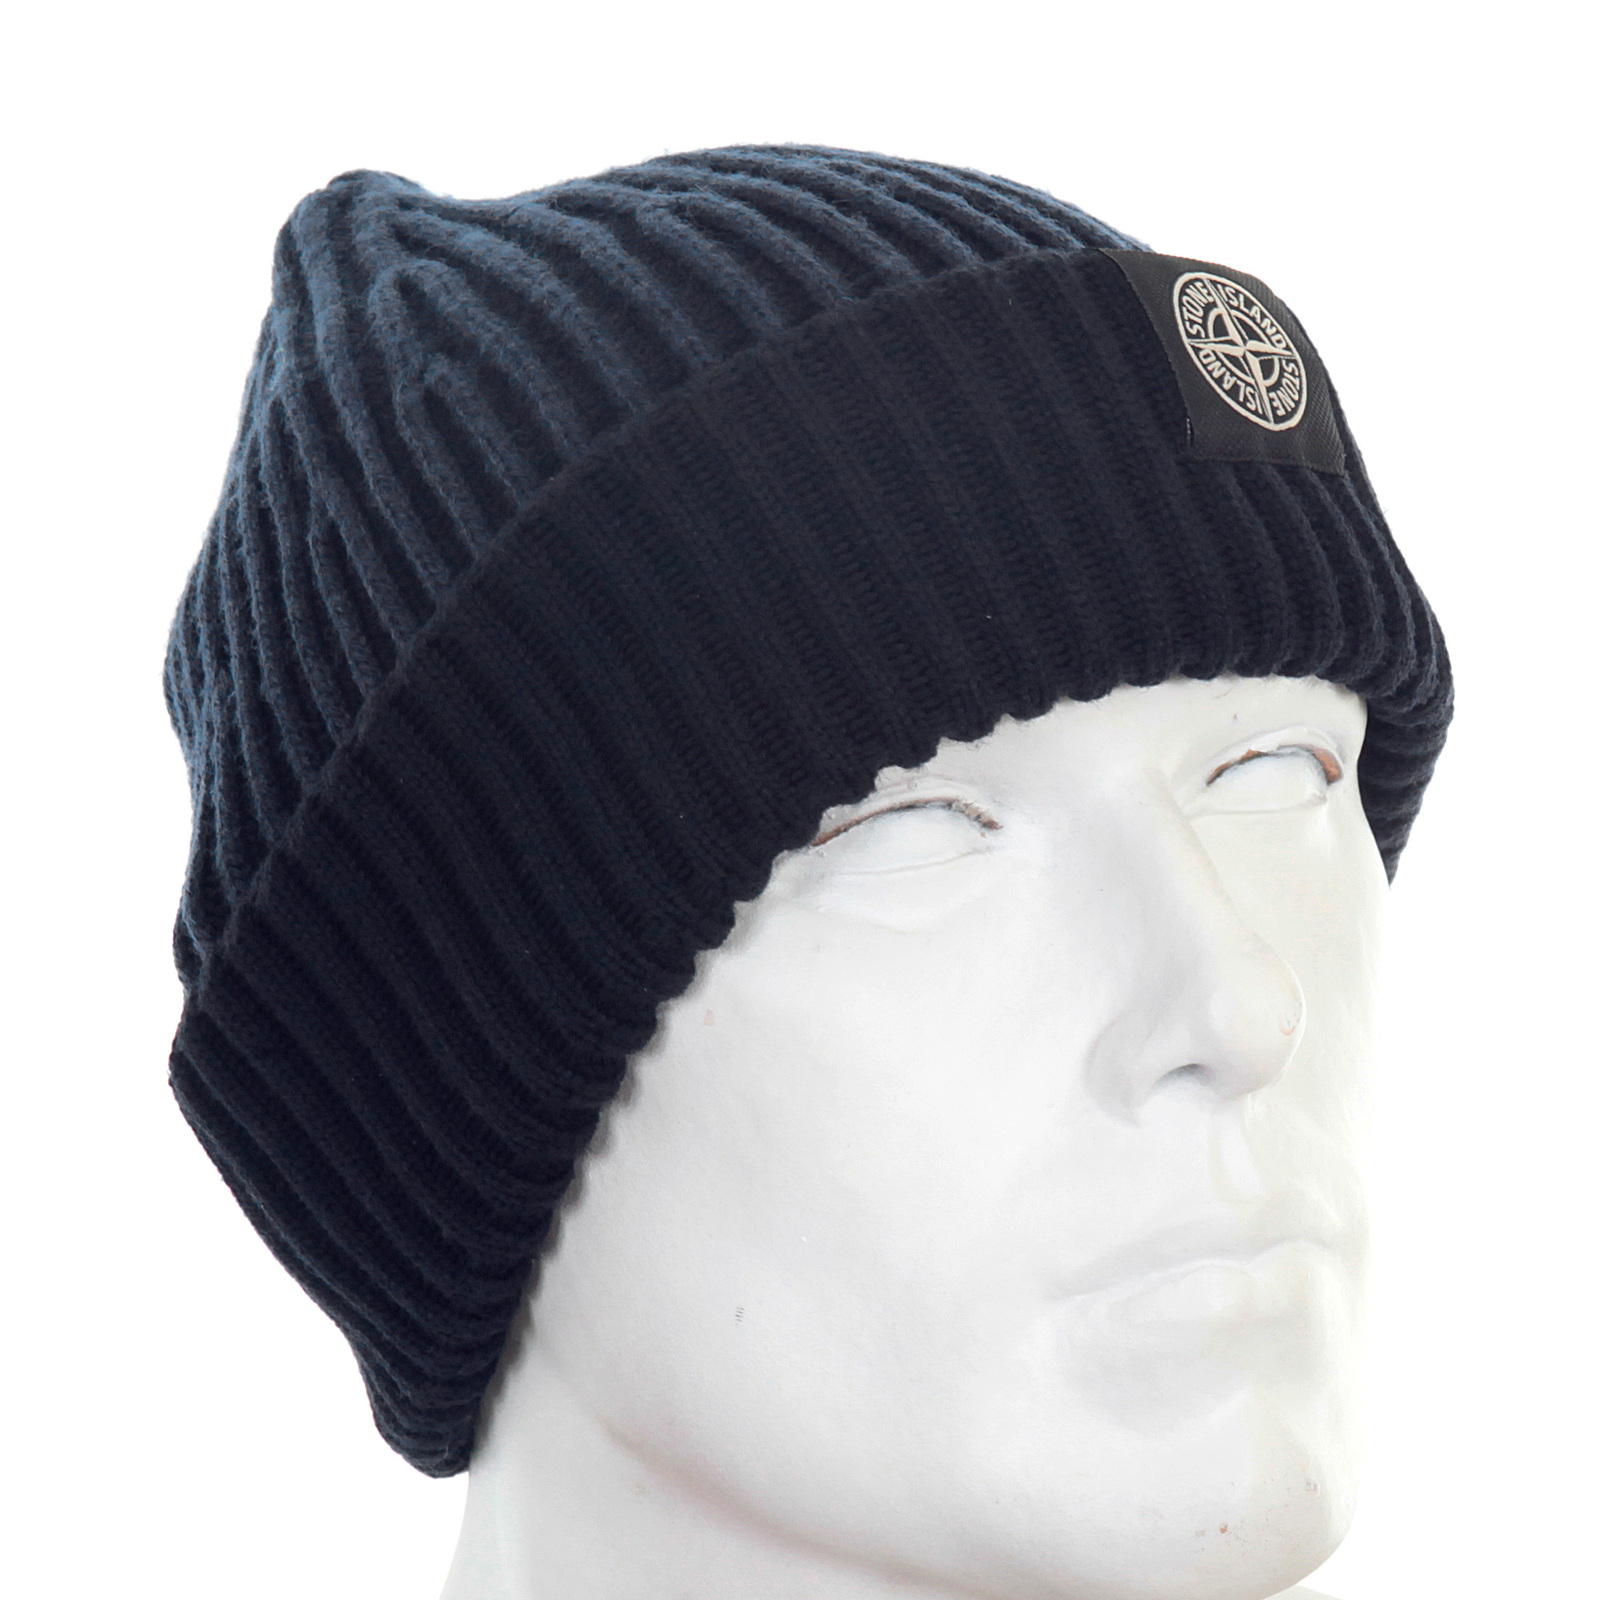 18c03baca69 where can i buy stone island mens navy rib knit 6115n09c6 beanie hat si3016  3b379 eef72